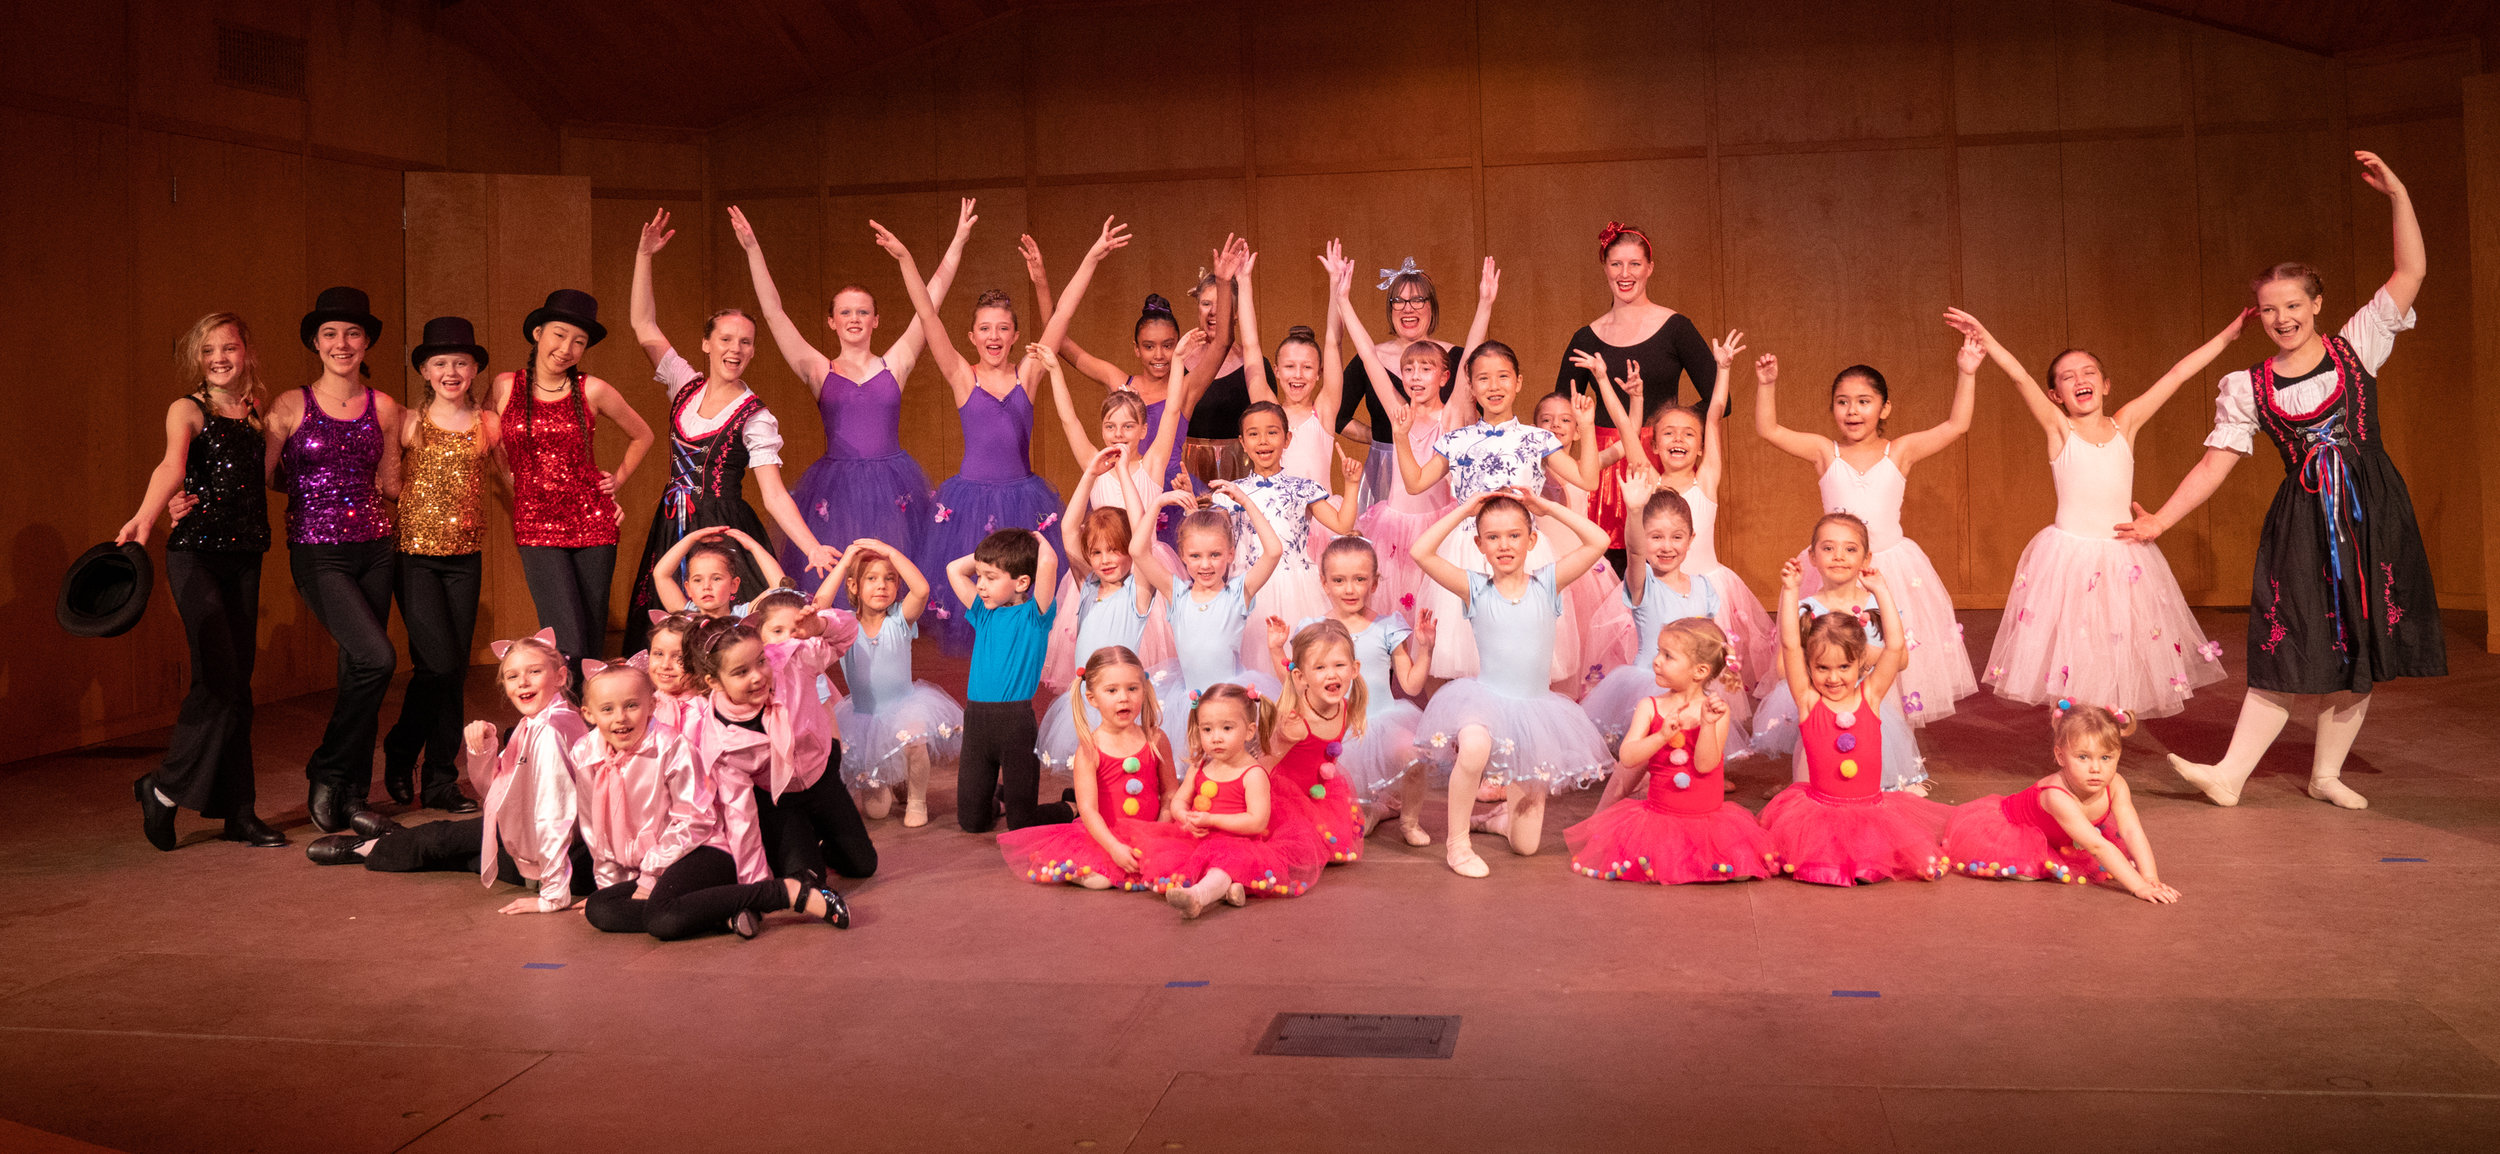 ballet jan 2018 group.jpg